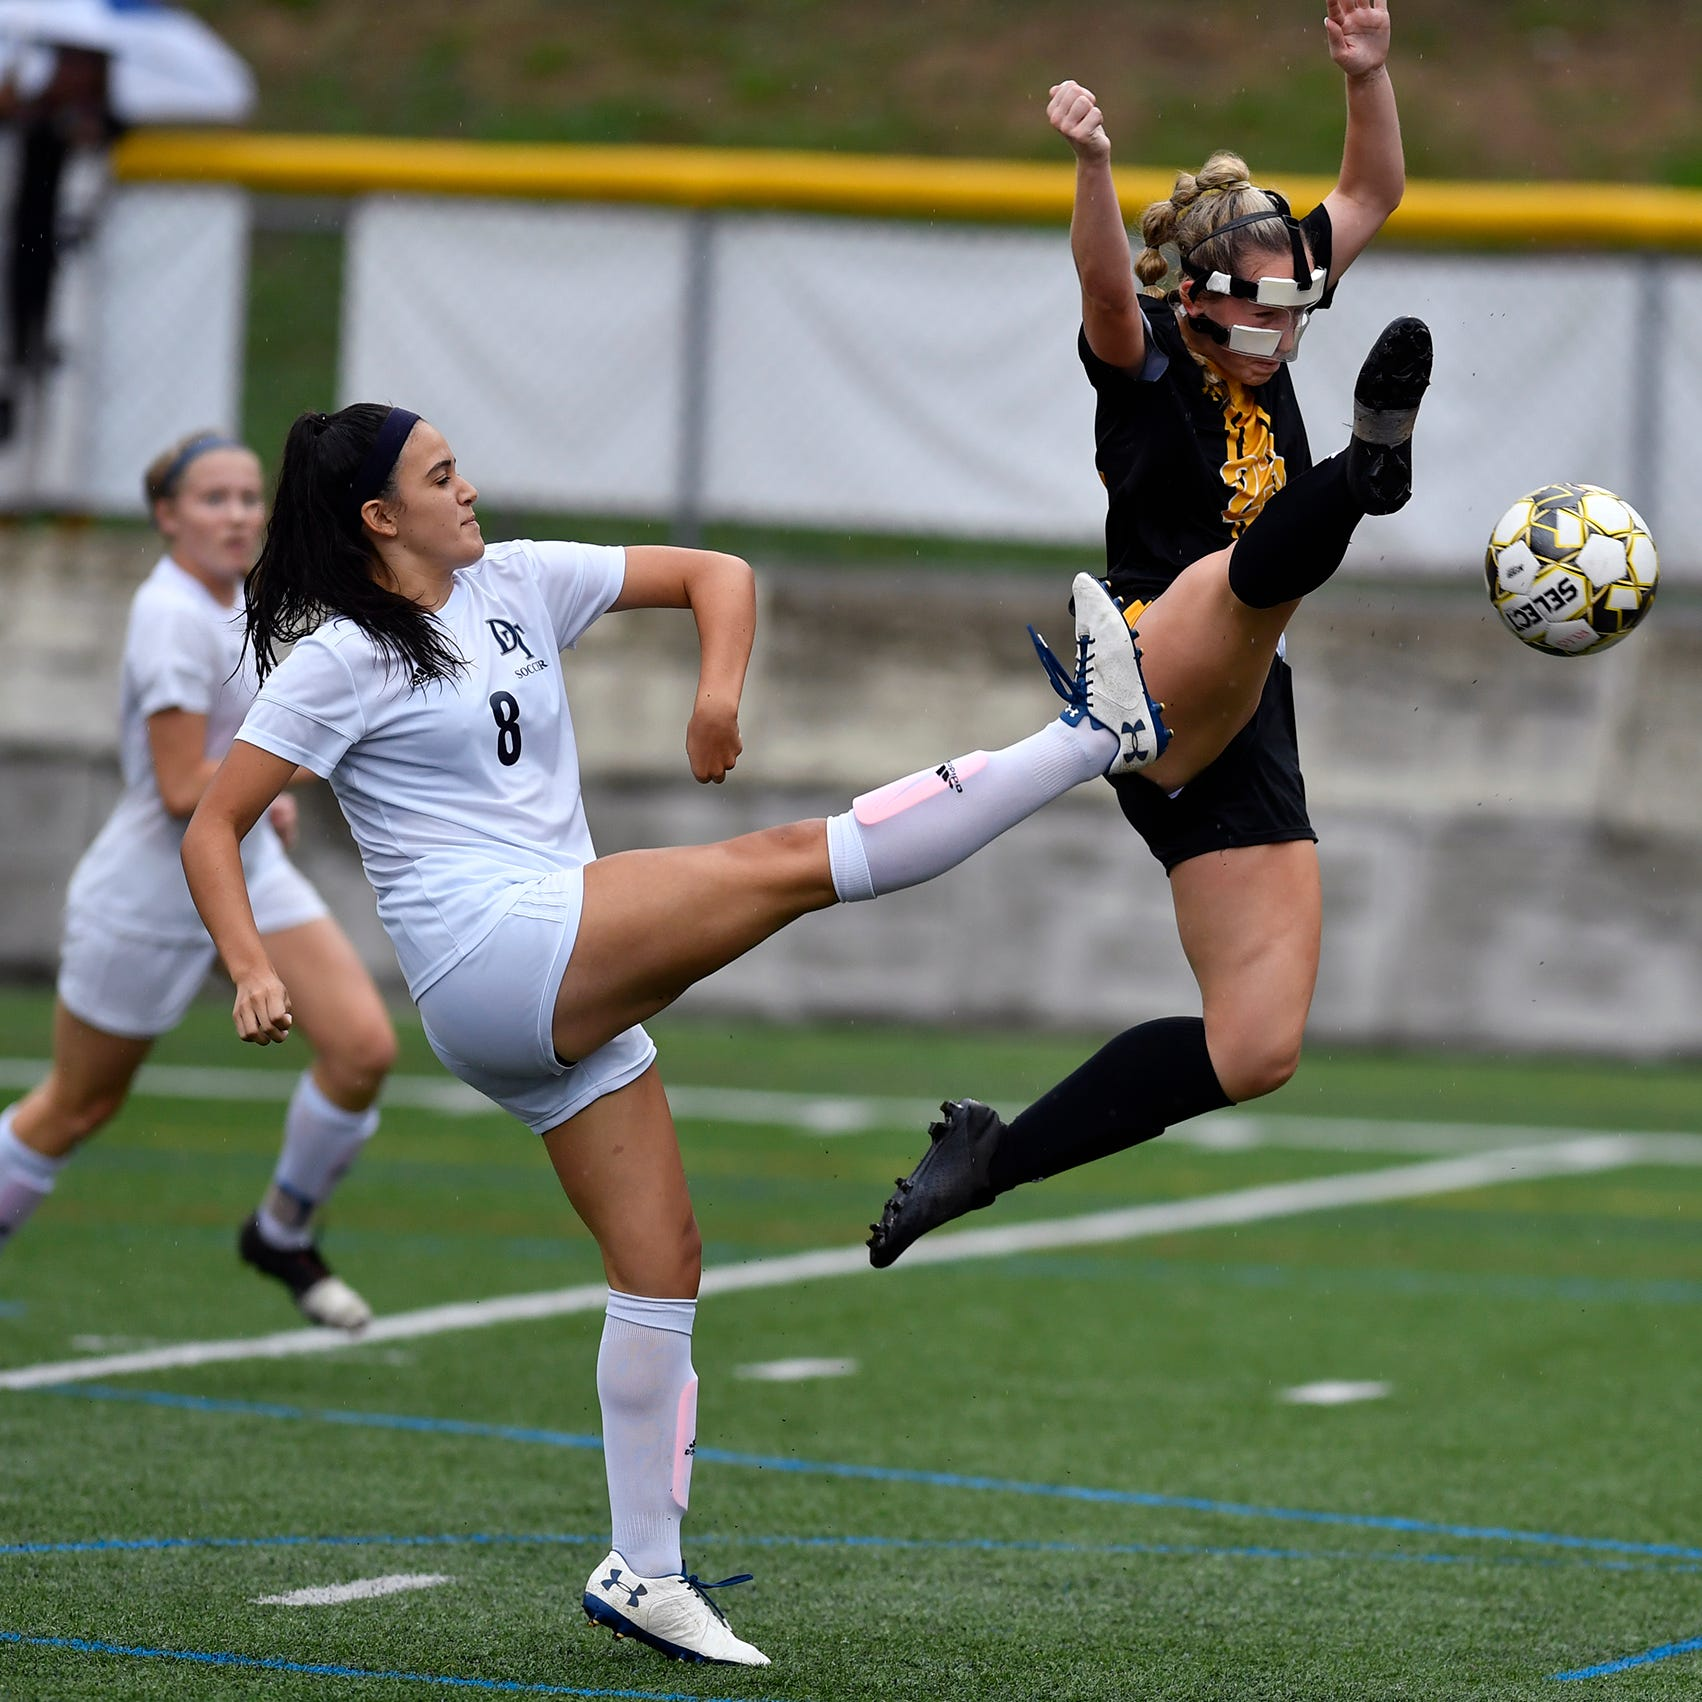 Red Lion's Gabby Young sees 'dream come true' with commitment to play Division I soccer